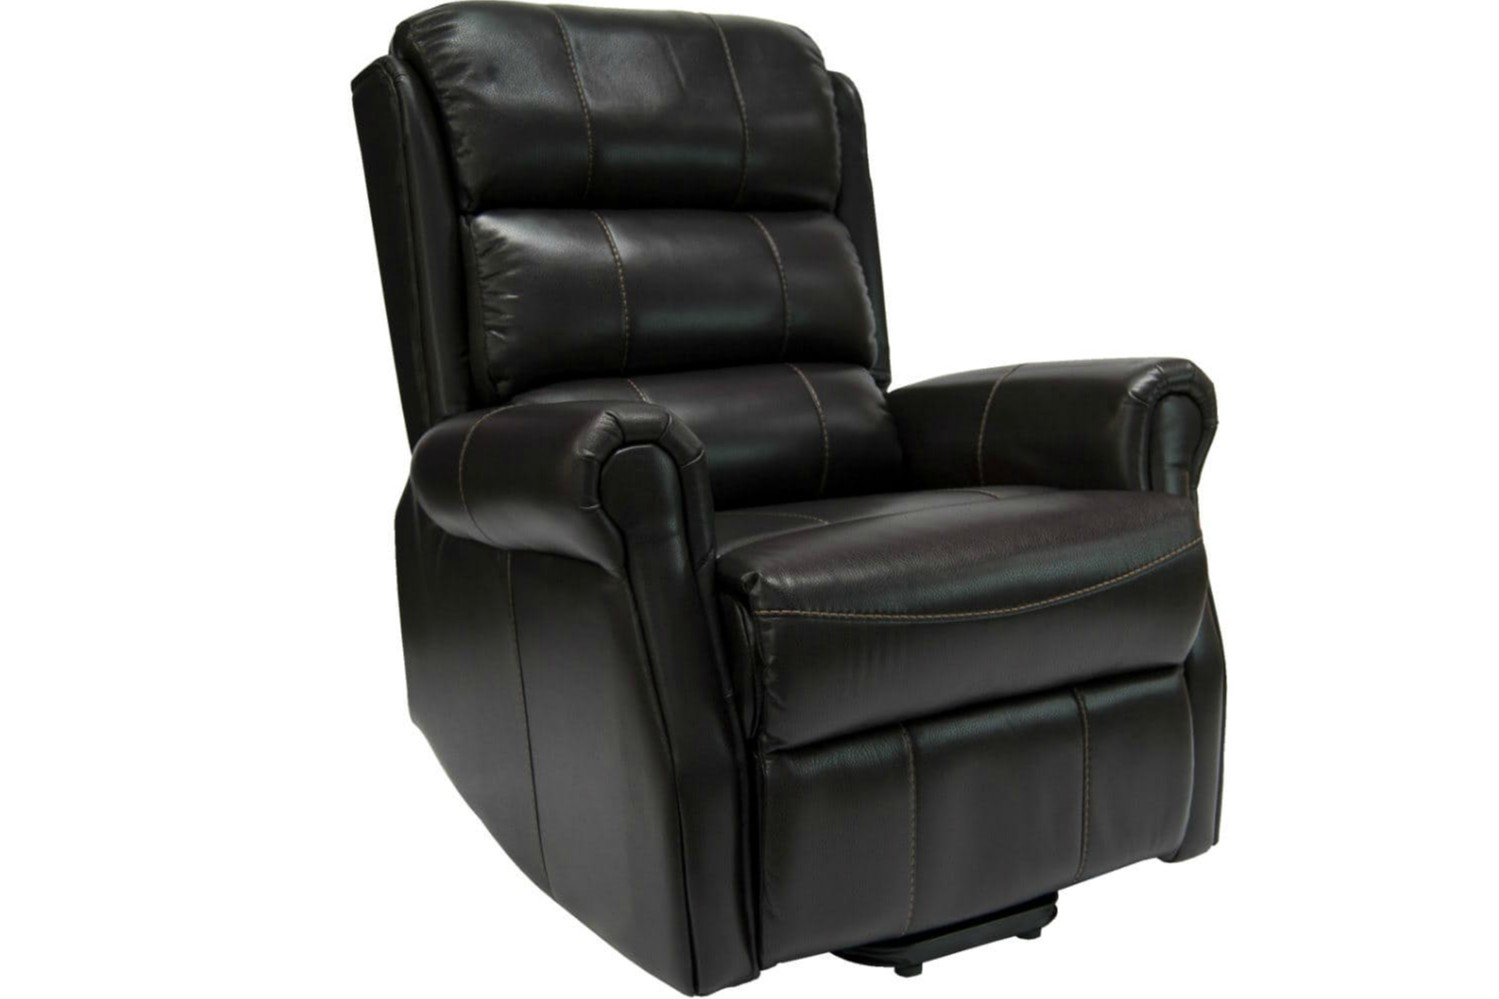 Swivel Recliner Chairs Hudson Recliner Chair Chocolate